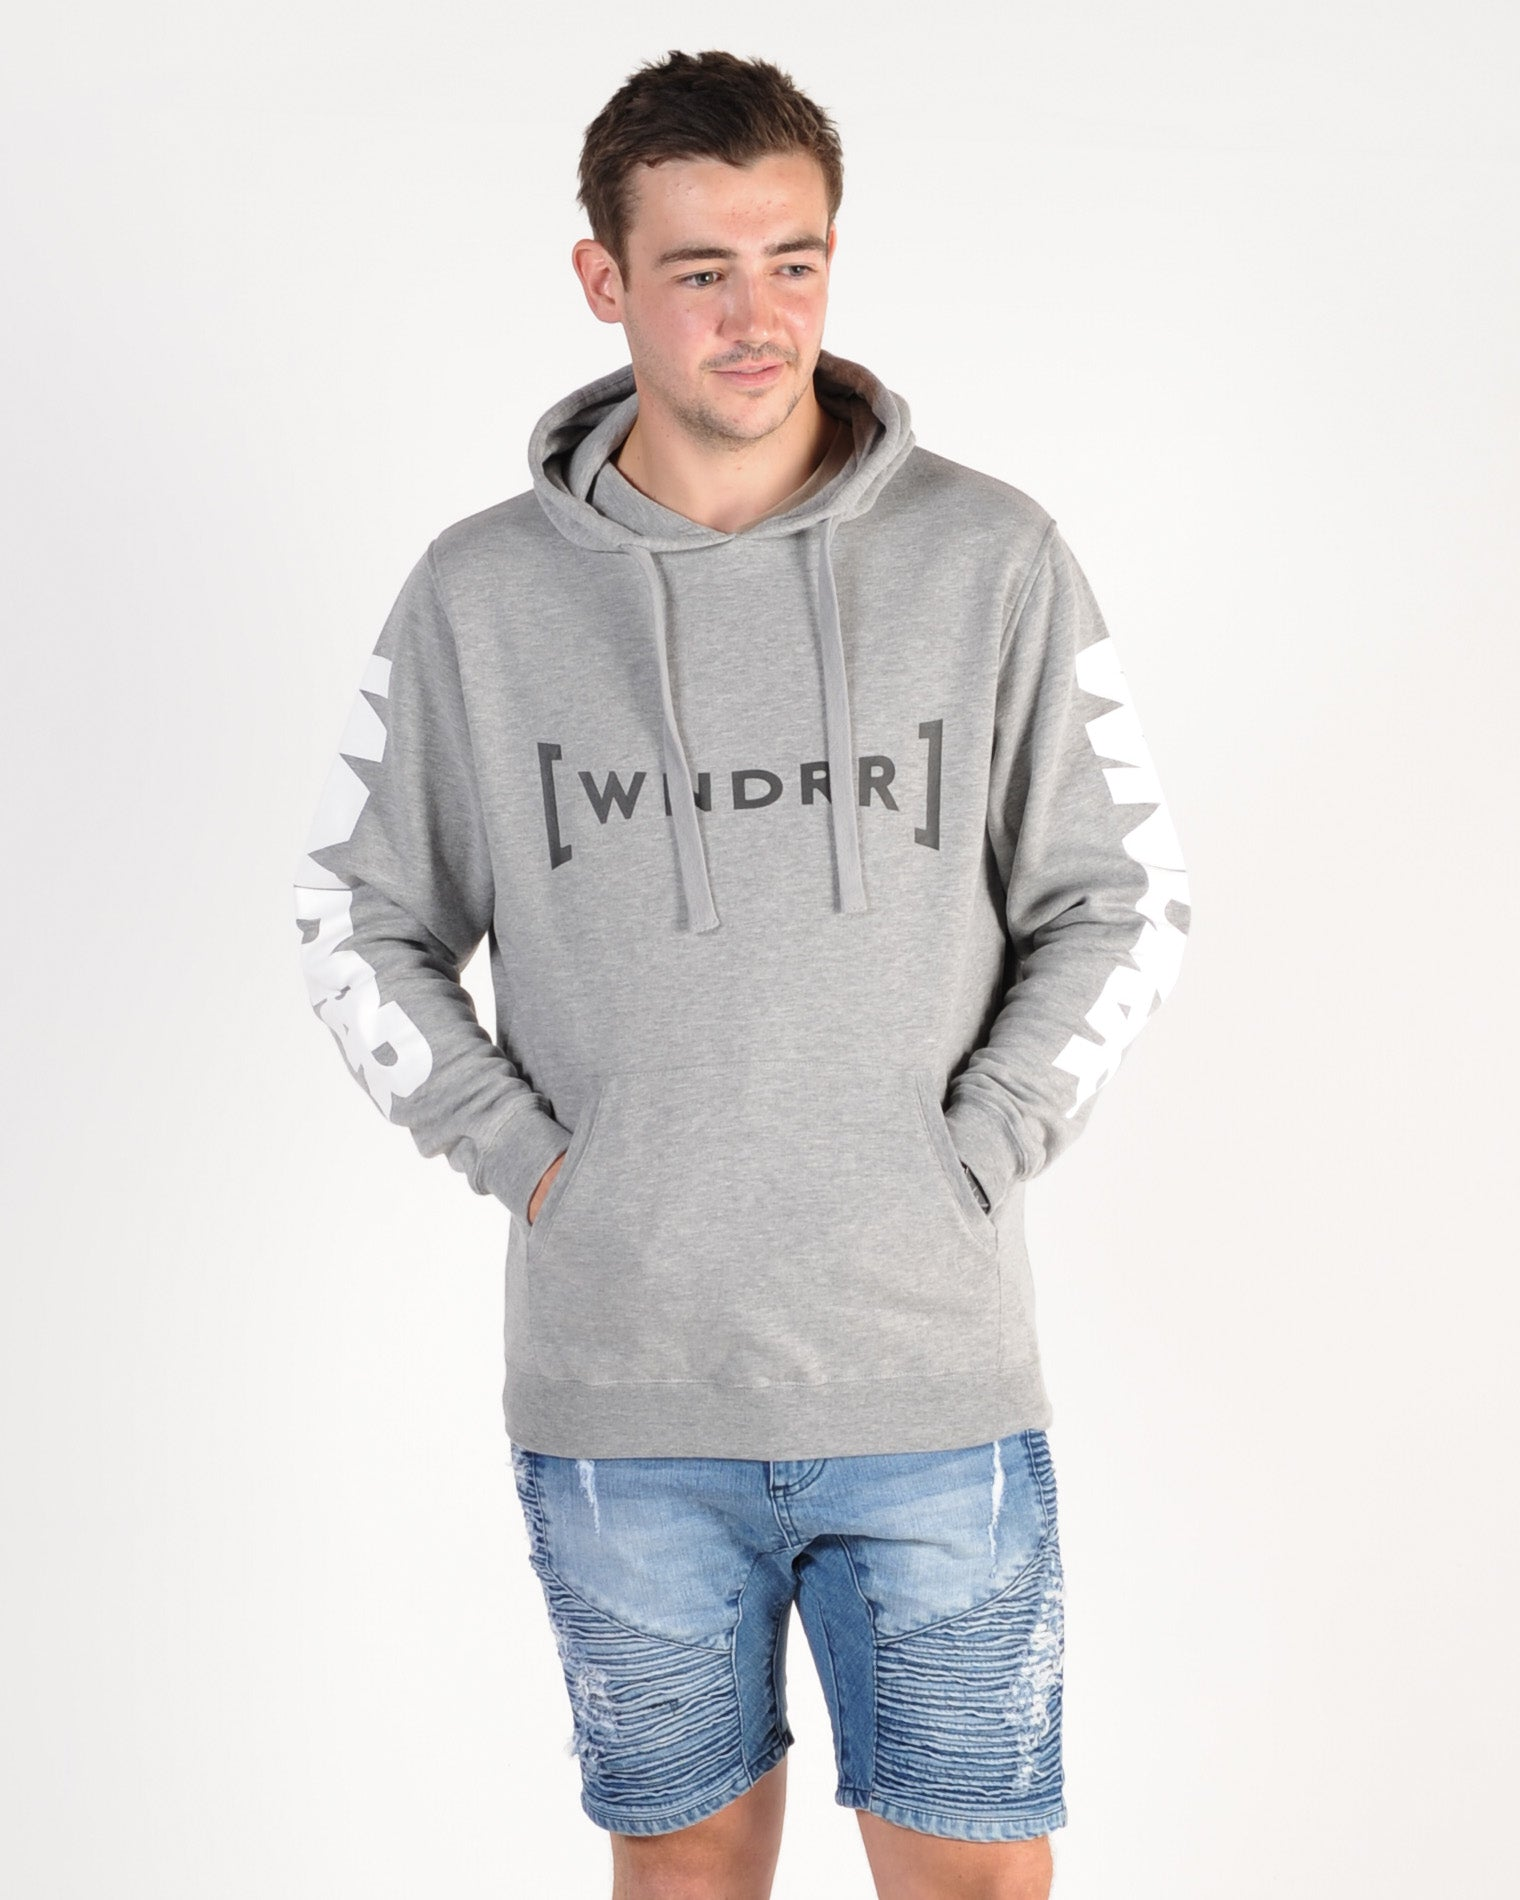 Wndrr Force Hood Sweat - Grey Marle